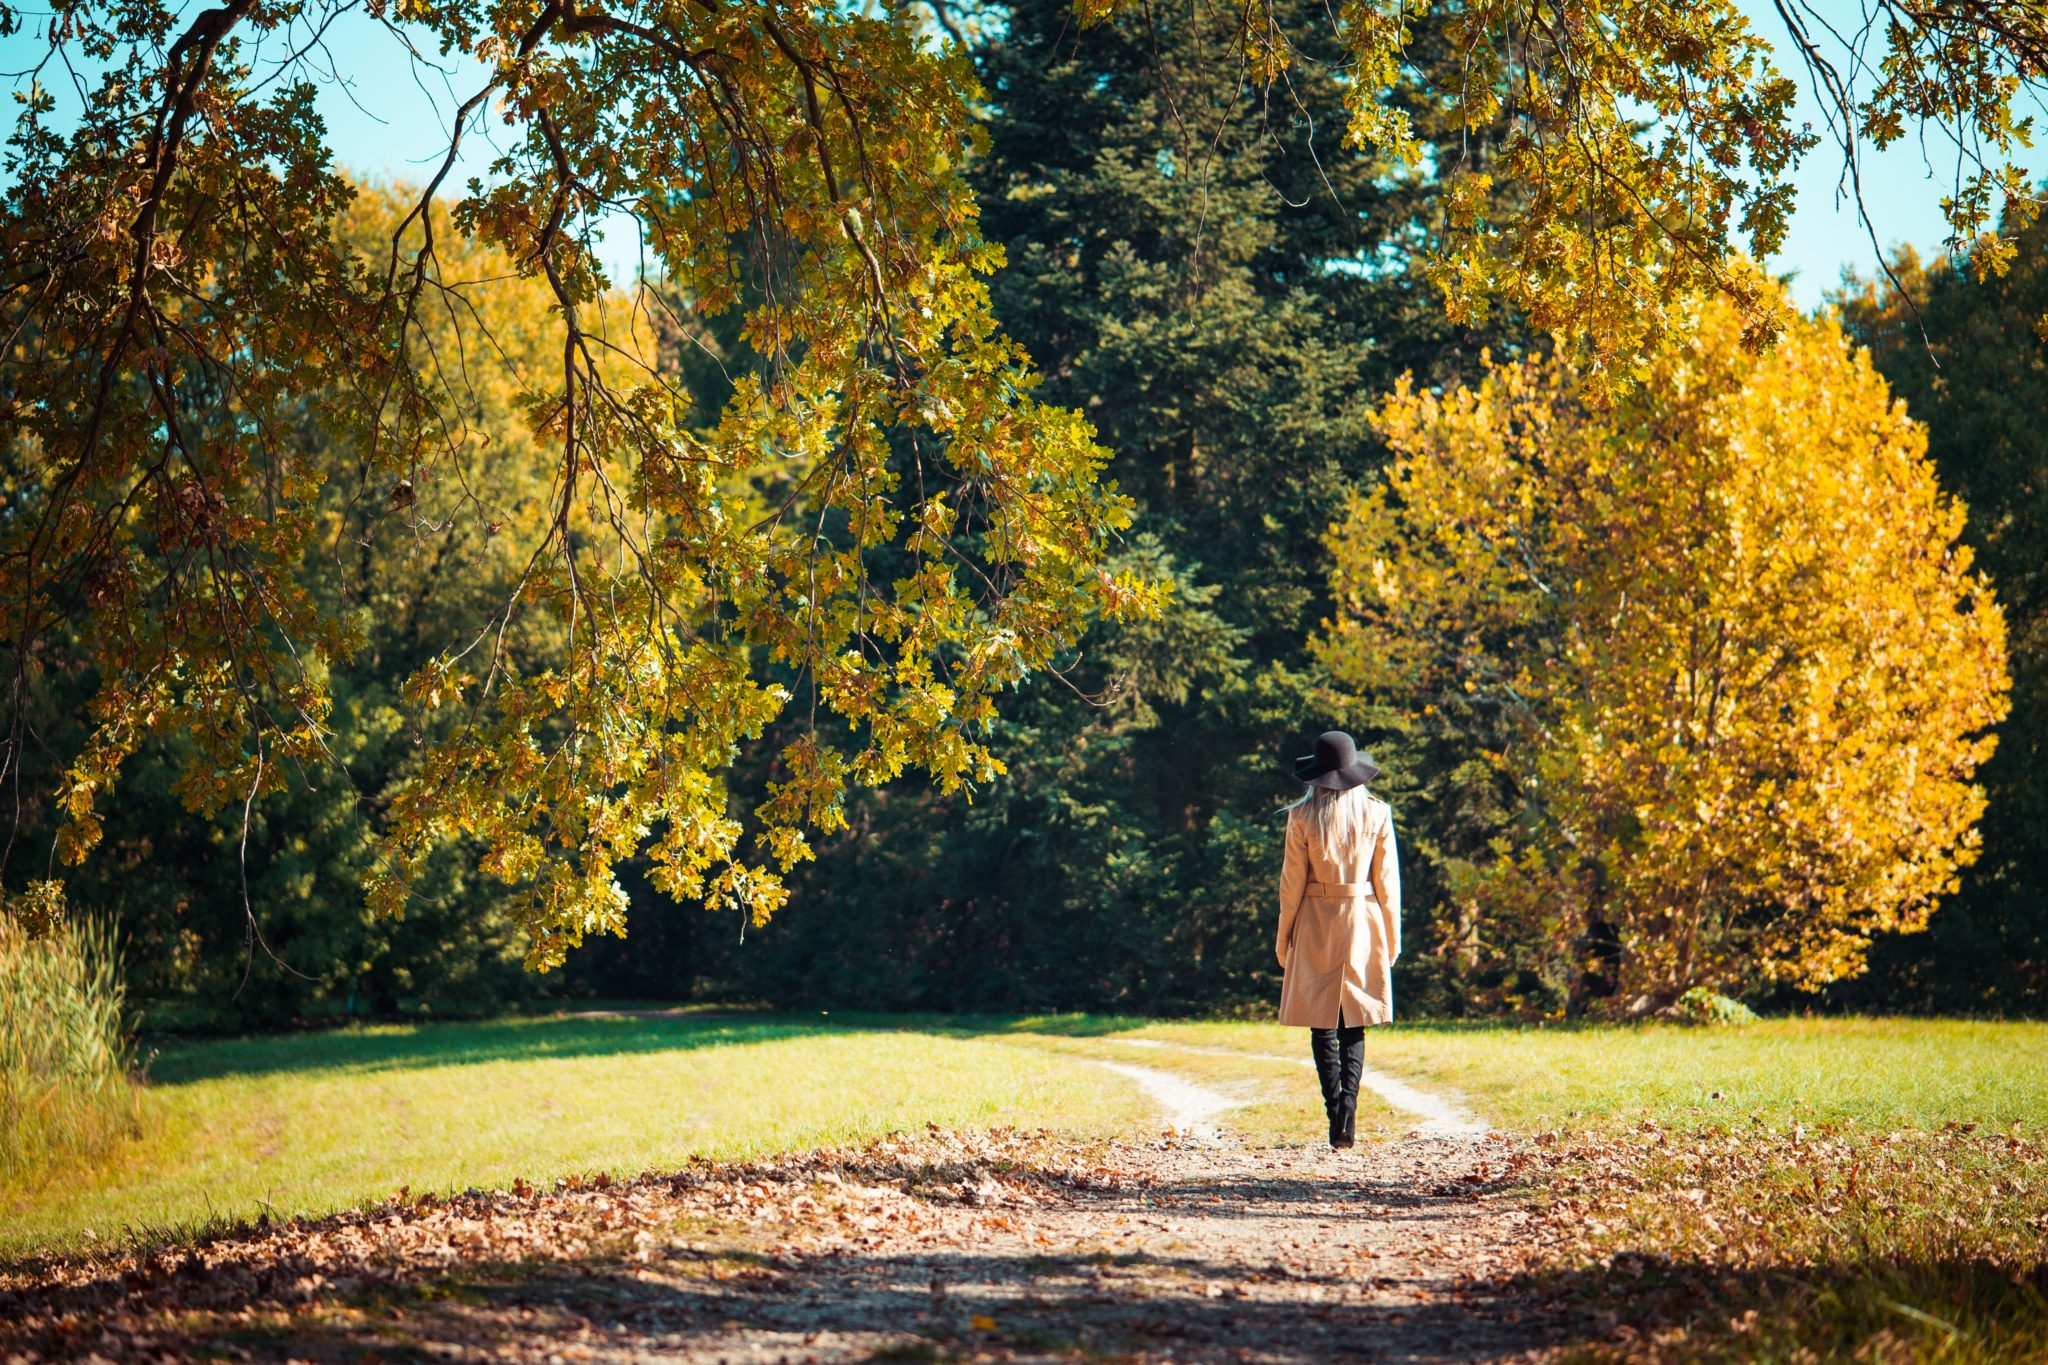 Woman walking in park enjoying nature